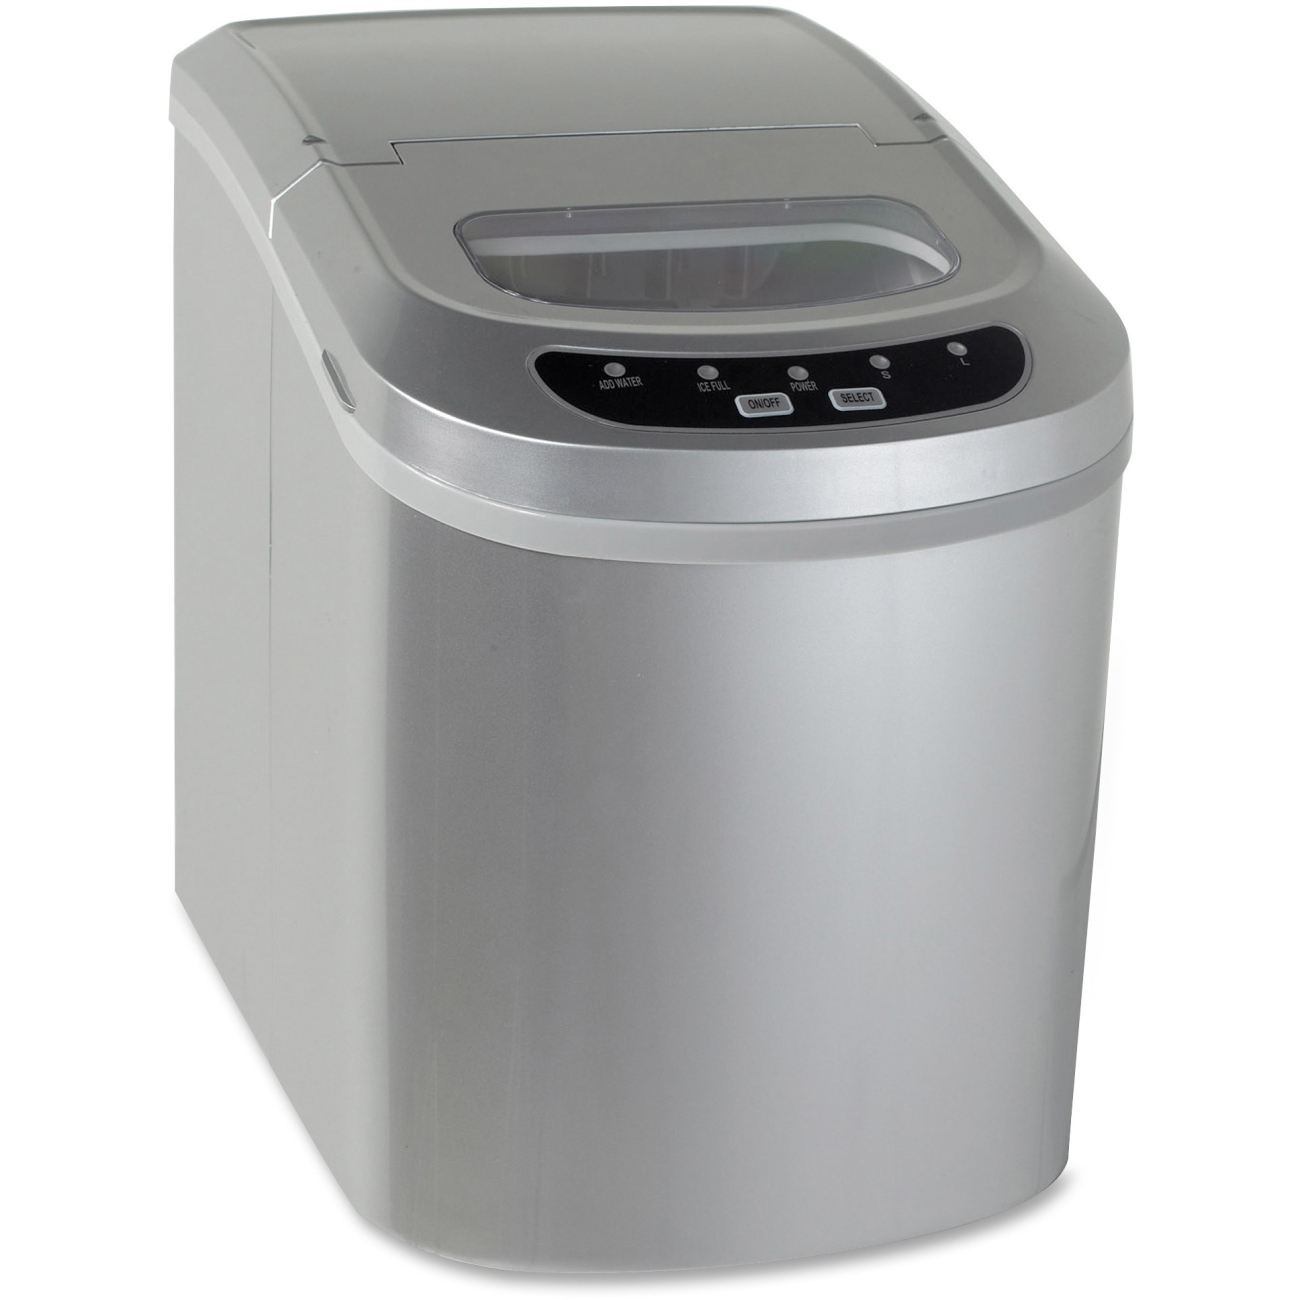 Avanti Countertop Dishwasher Printer